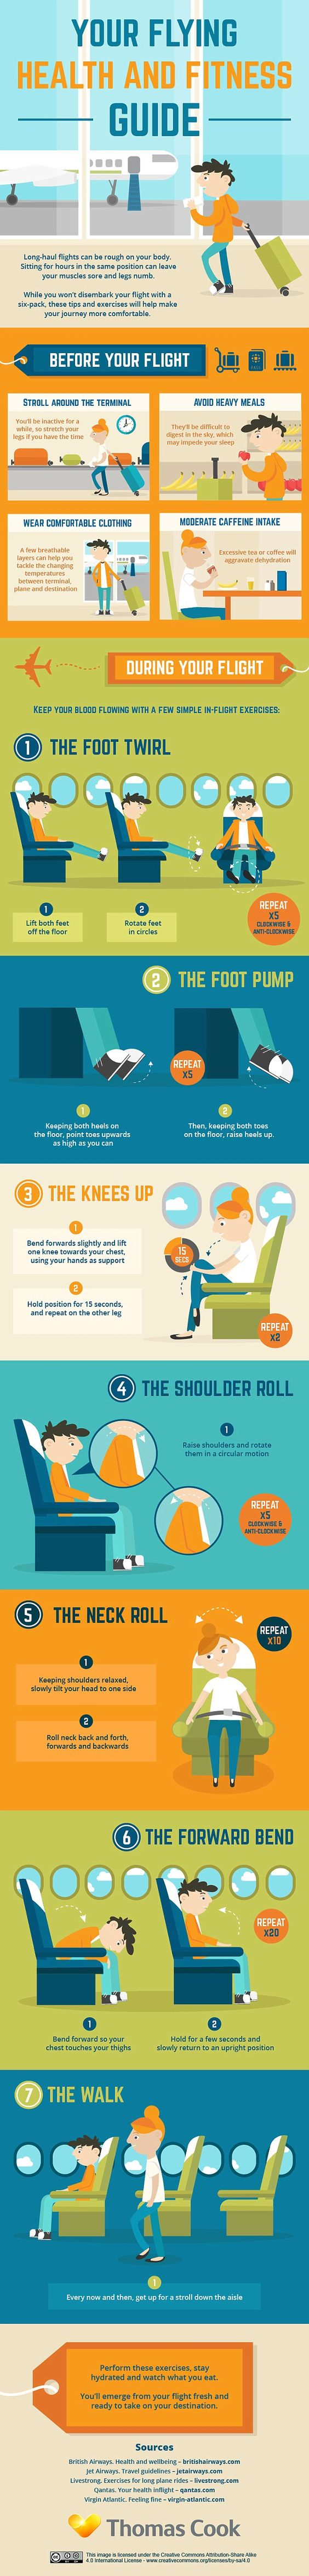 Infographic reveals how to stay healthy on a long-haul flight   Daily Mail Online